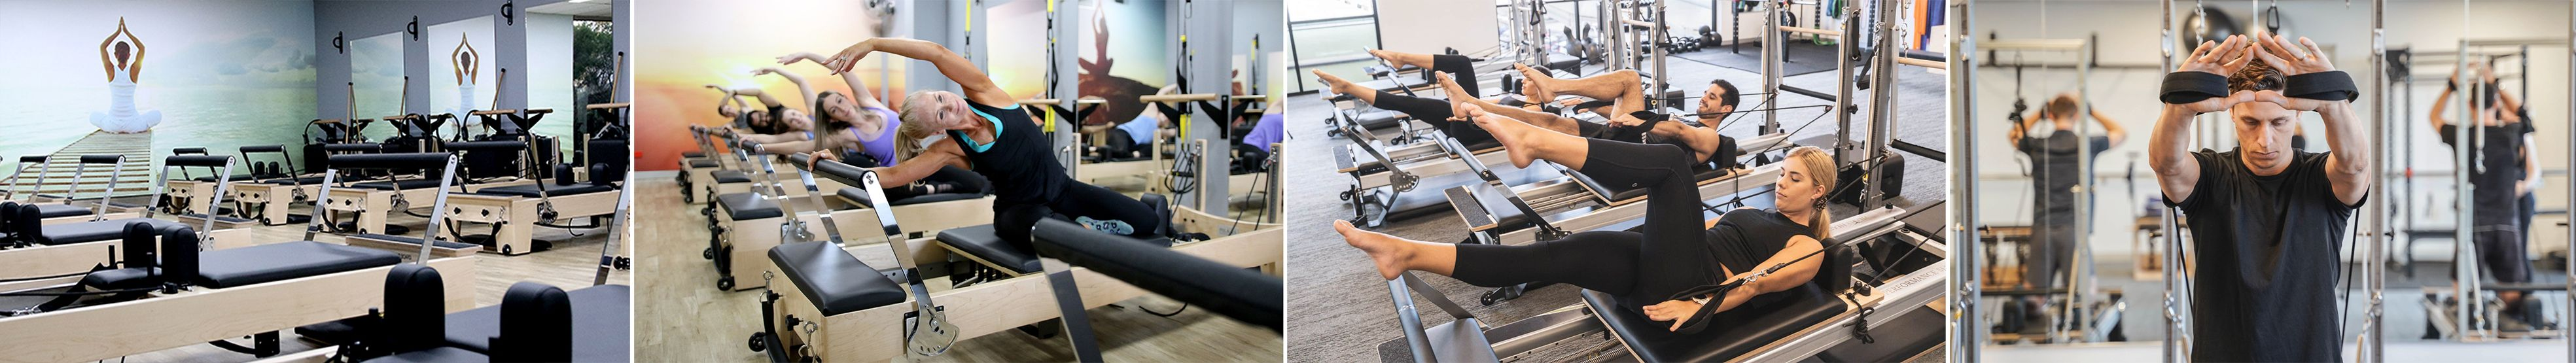 Pilates Health Equipment | Extensive Range of Pilates Reformer Models Available